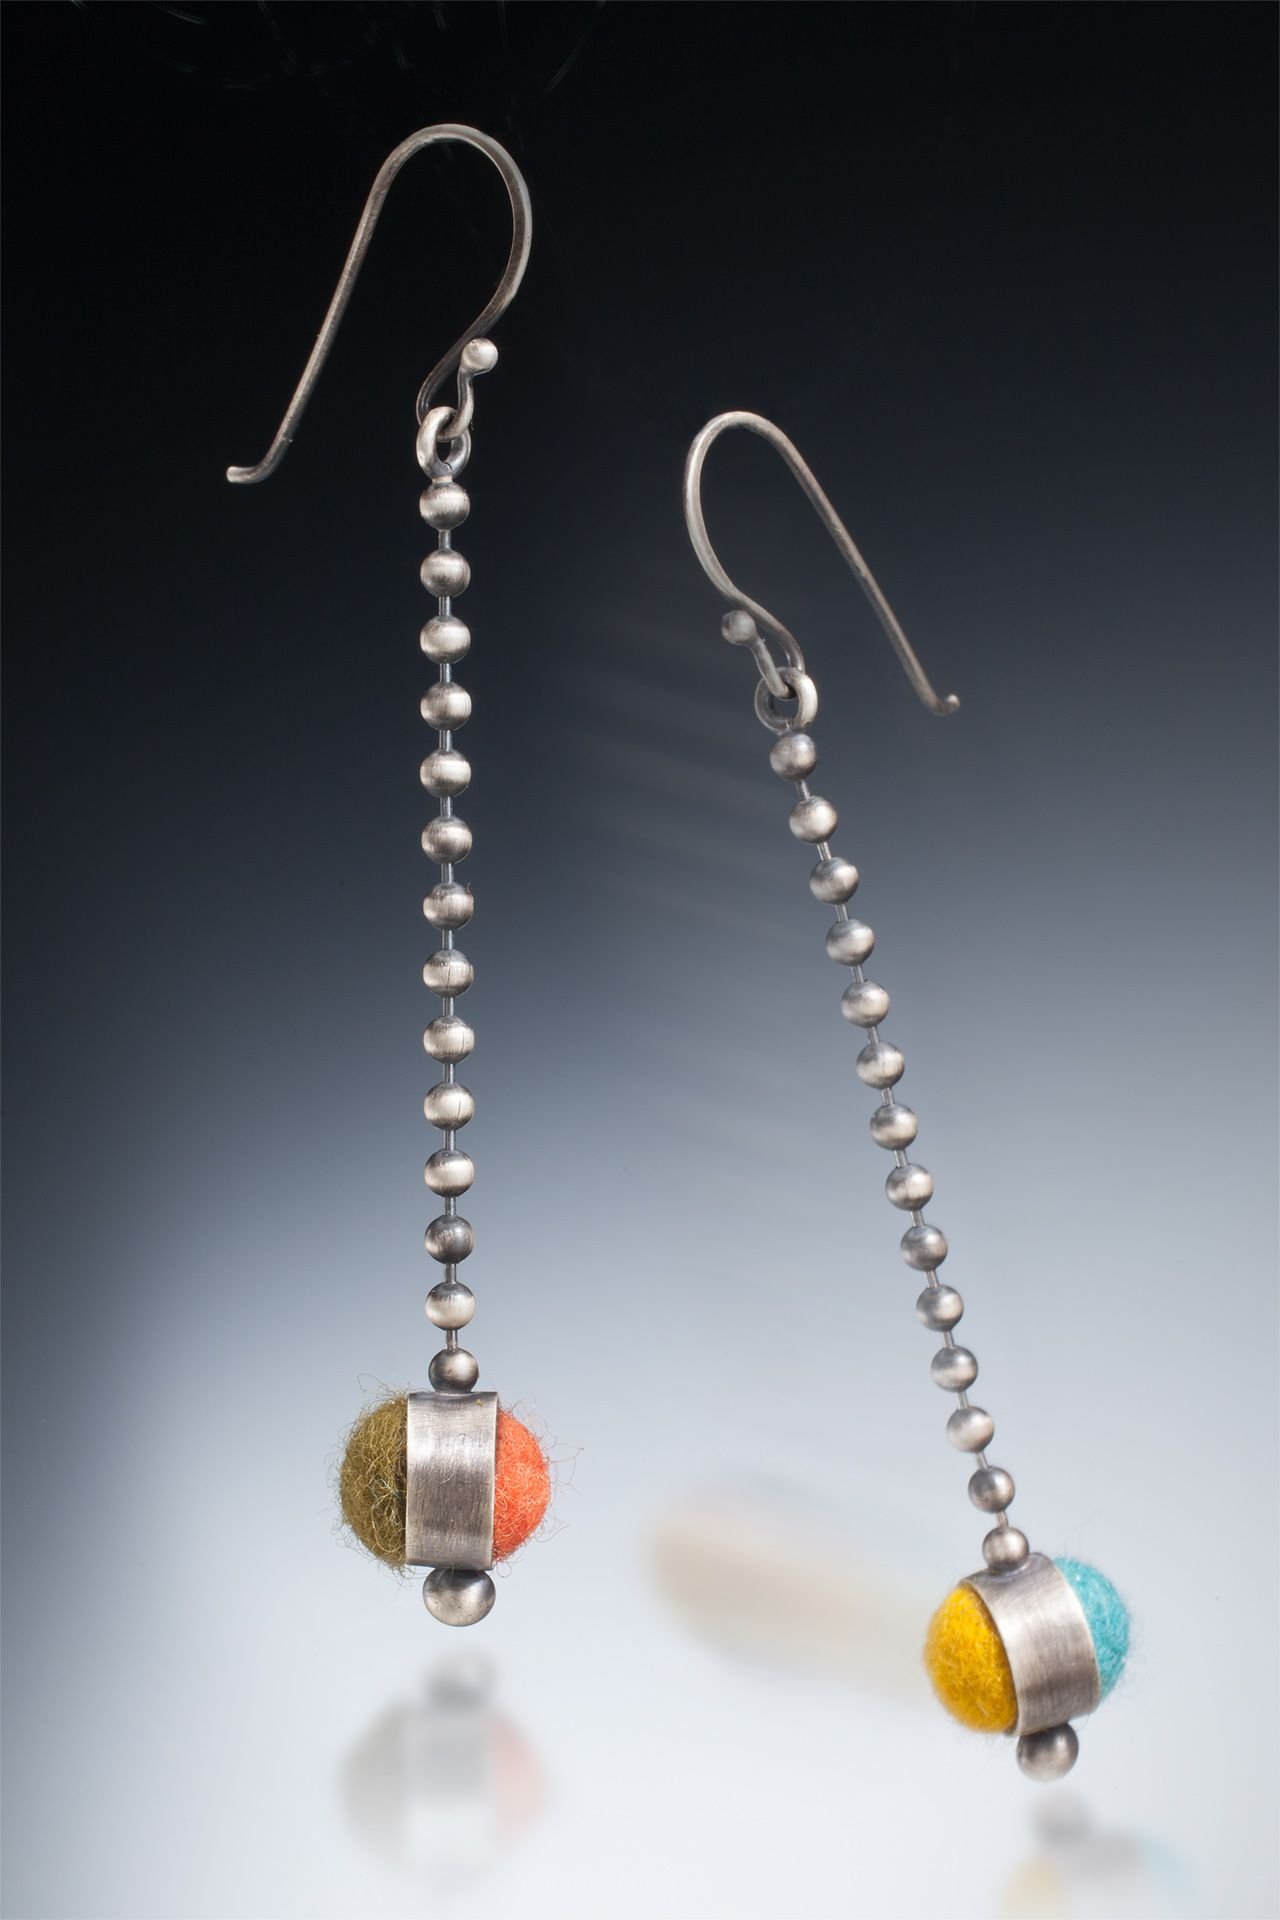 Felted Silver Double Sided Ball and Chain Earrings Photo by: Ralph Gabriner www.cararomano.com